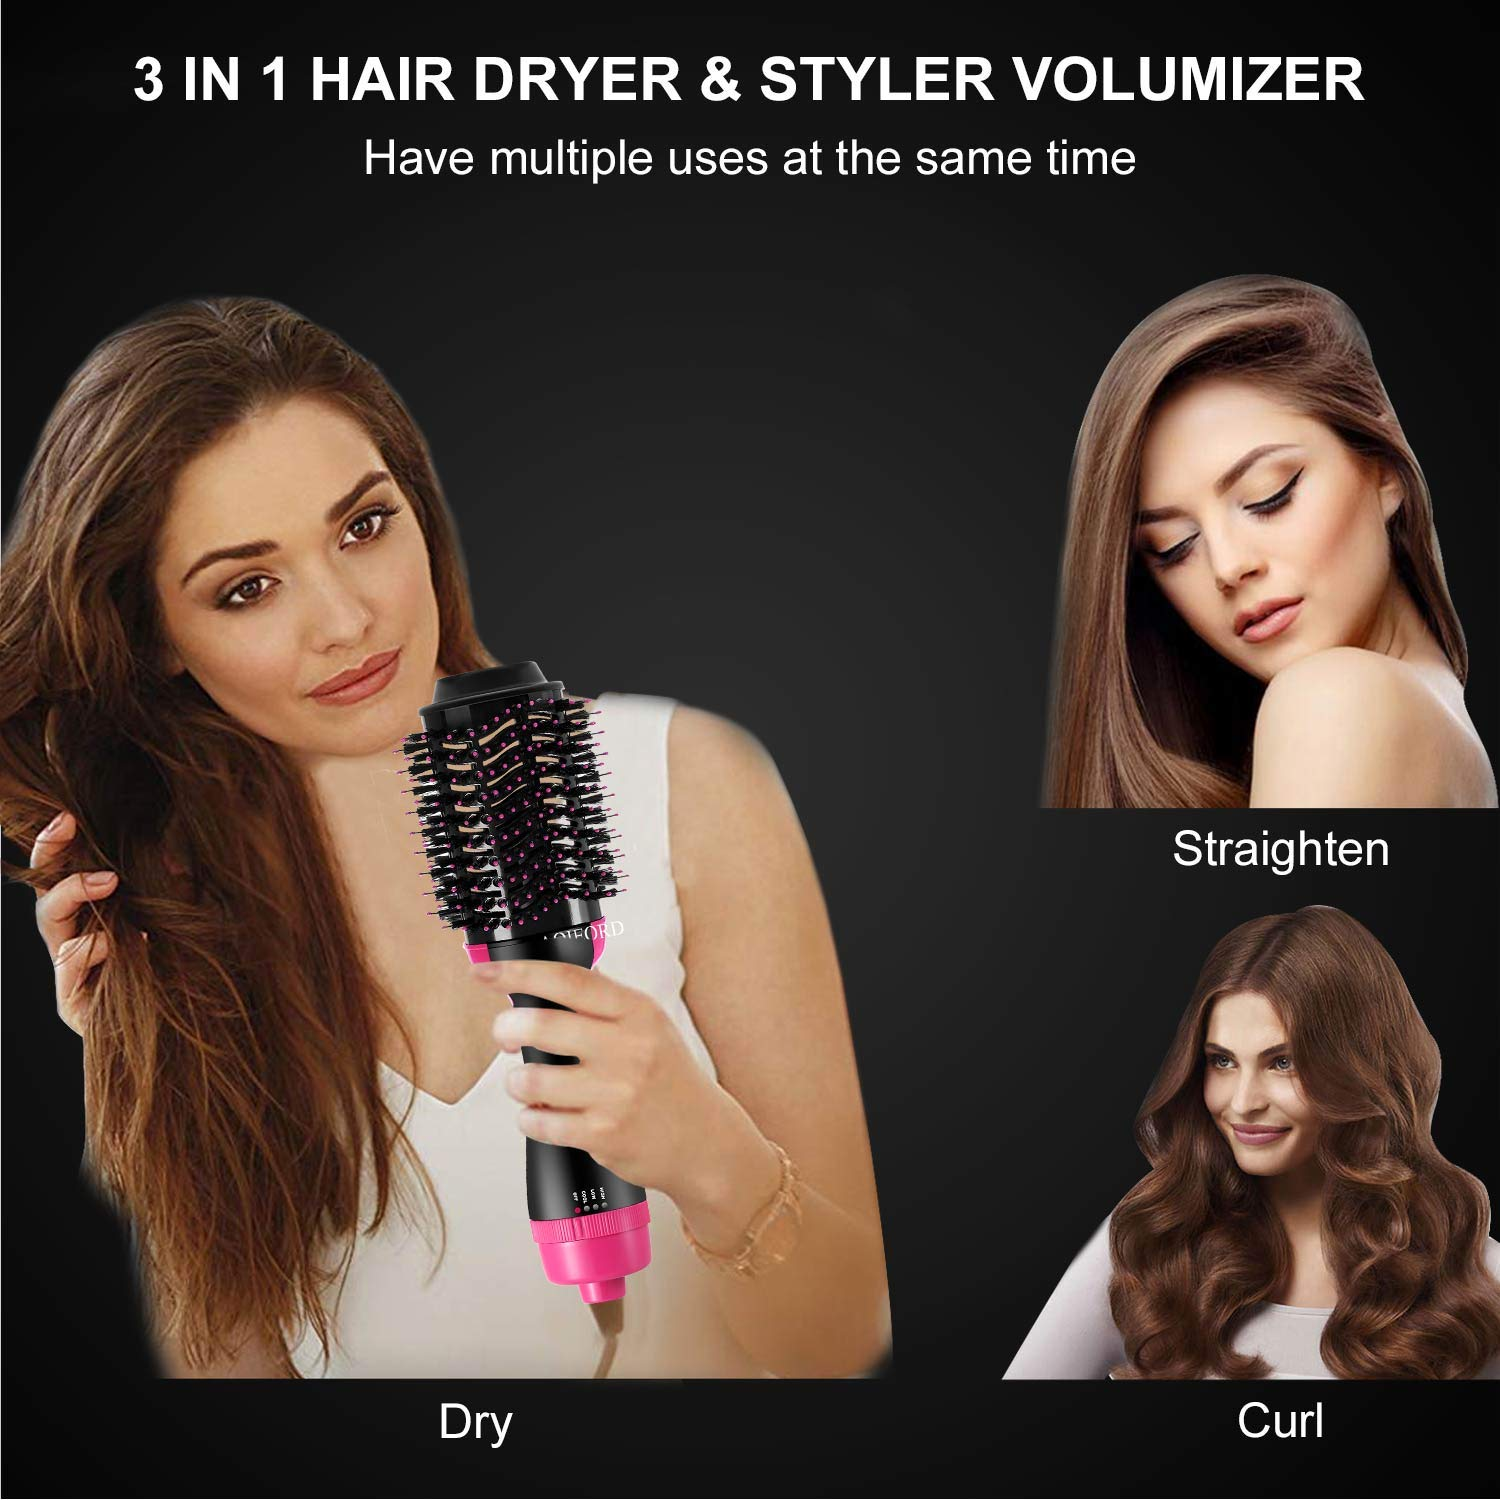 Hair Dryer Brush, AOIEORD Dry & Straighten & Curl in One Step Hair Dryer and Volumizer, Smooth Frizz with Ionic Technology by AOIEORD (Image #3)